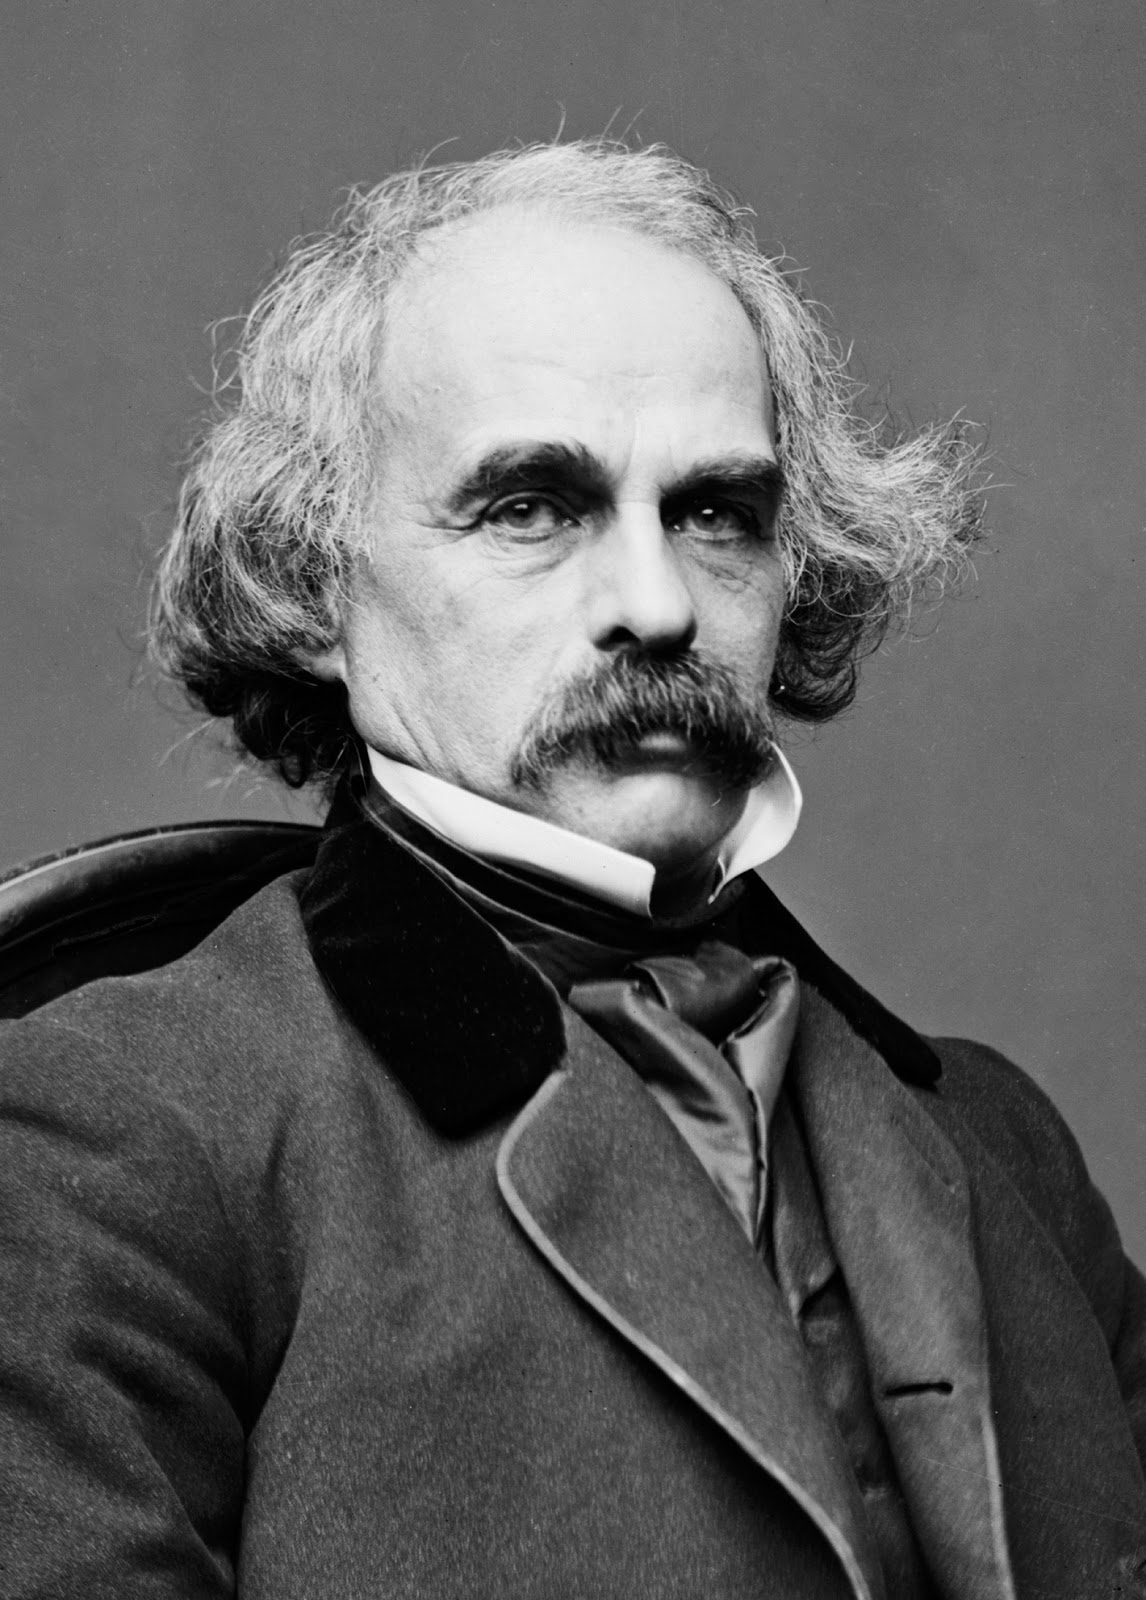 nathaniel hawthorne the birthmark essay research paper help nathaniel hawthorne the birthmark essay